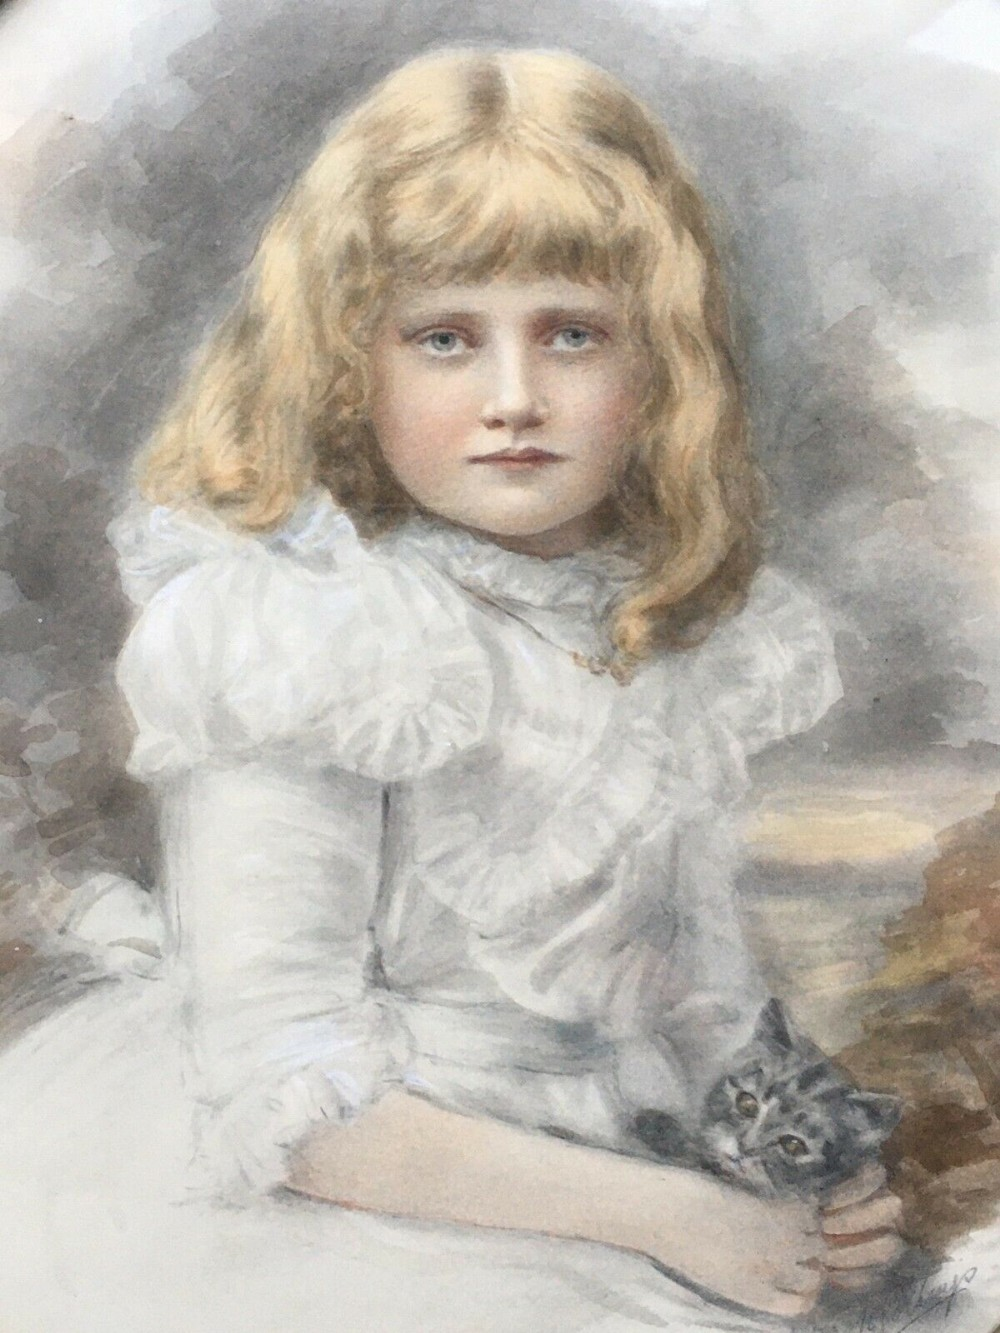 keturah collings signed original 19th century english antique watercolour portrait painting of a young girl helen garstin